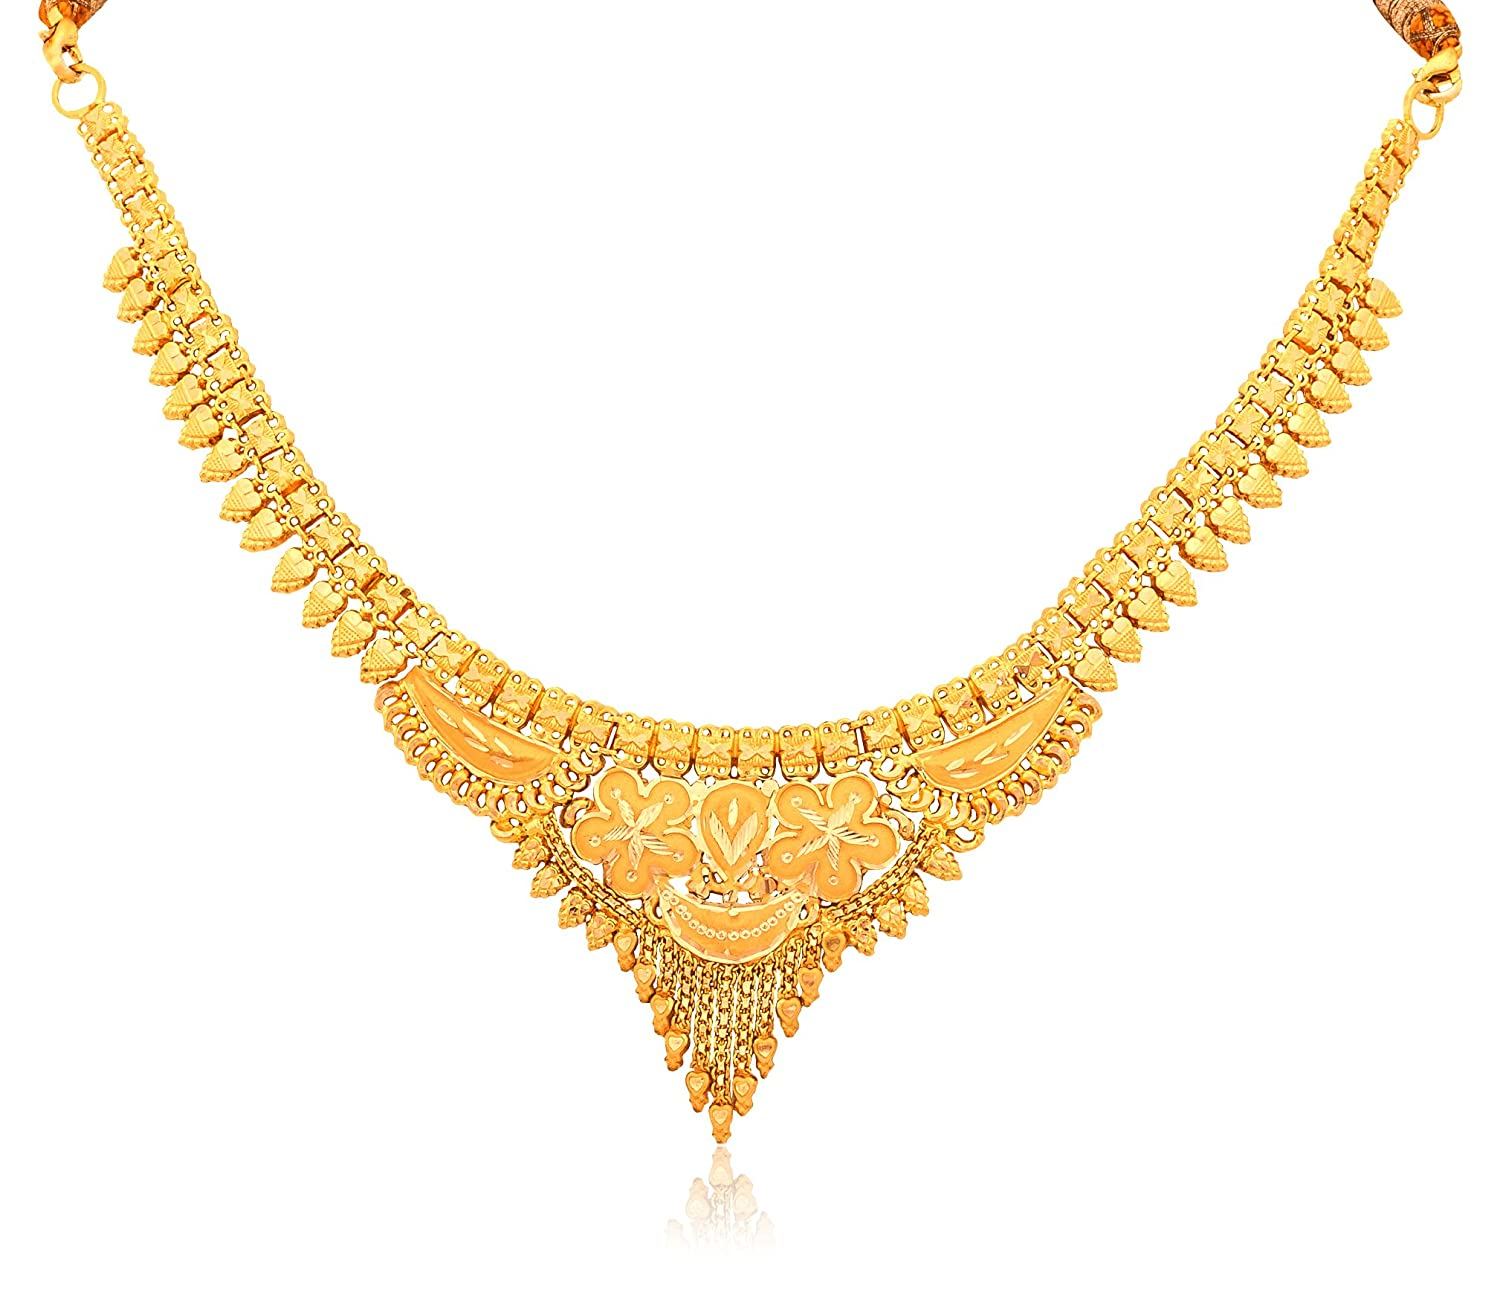 img chanel yellow the rev clipped chain necklace gold vintage pendant adore products